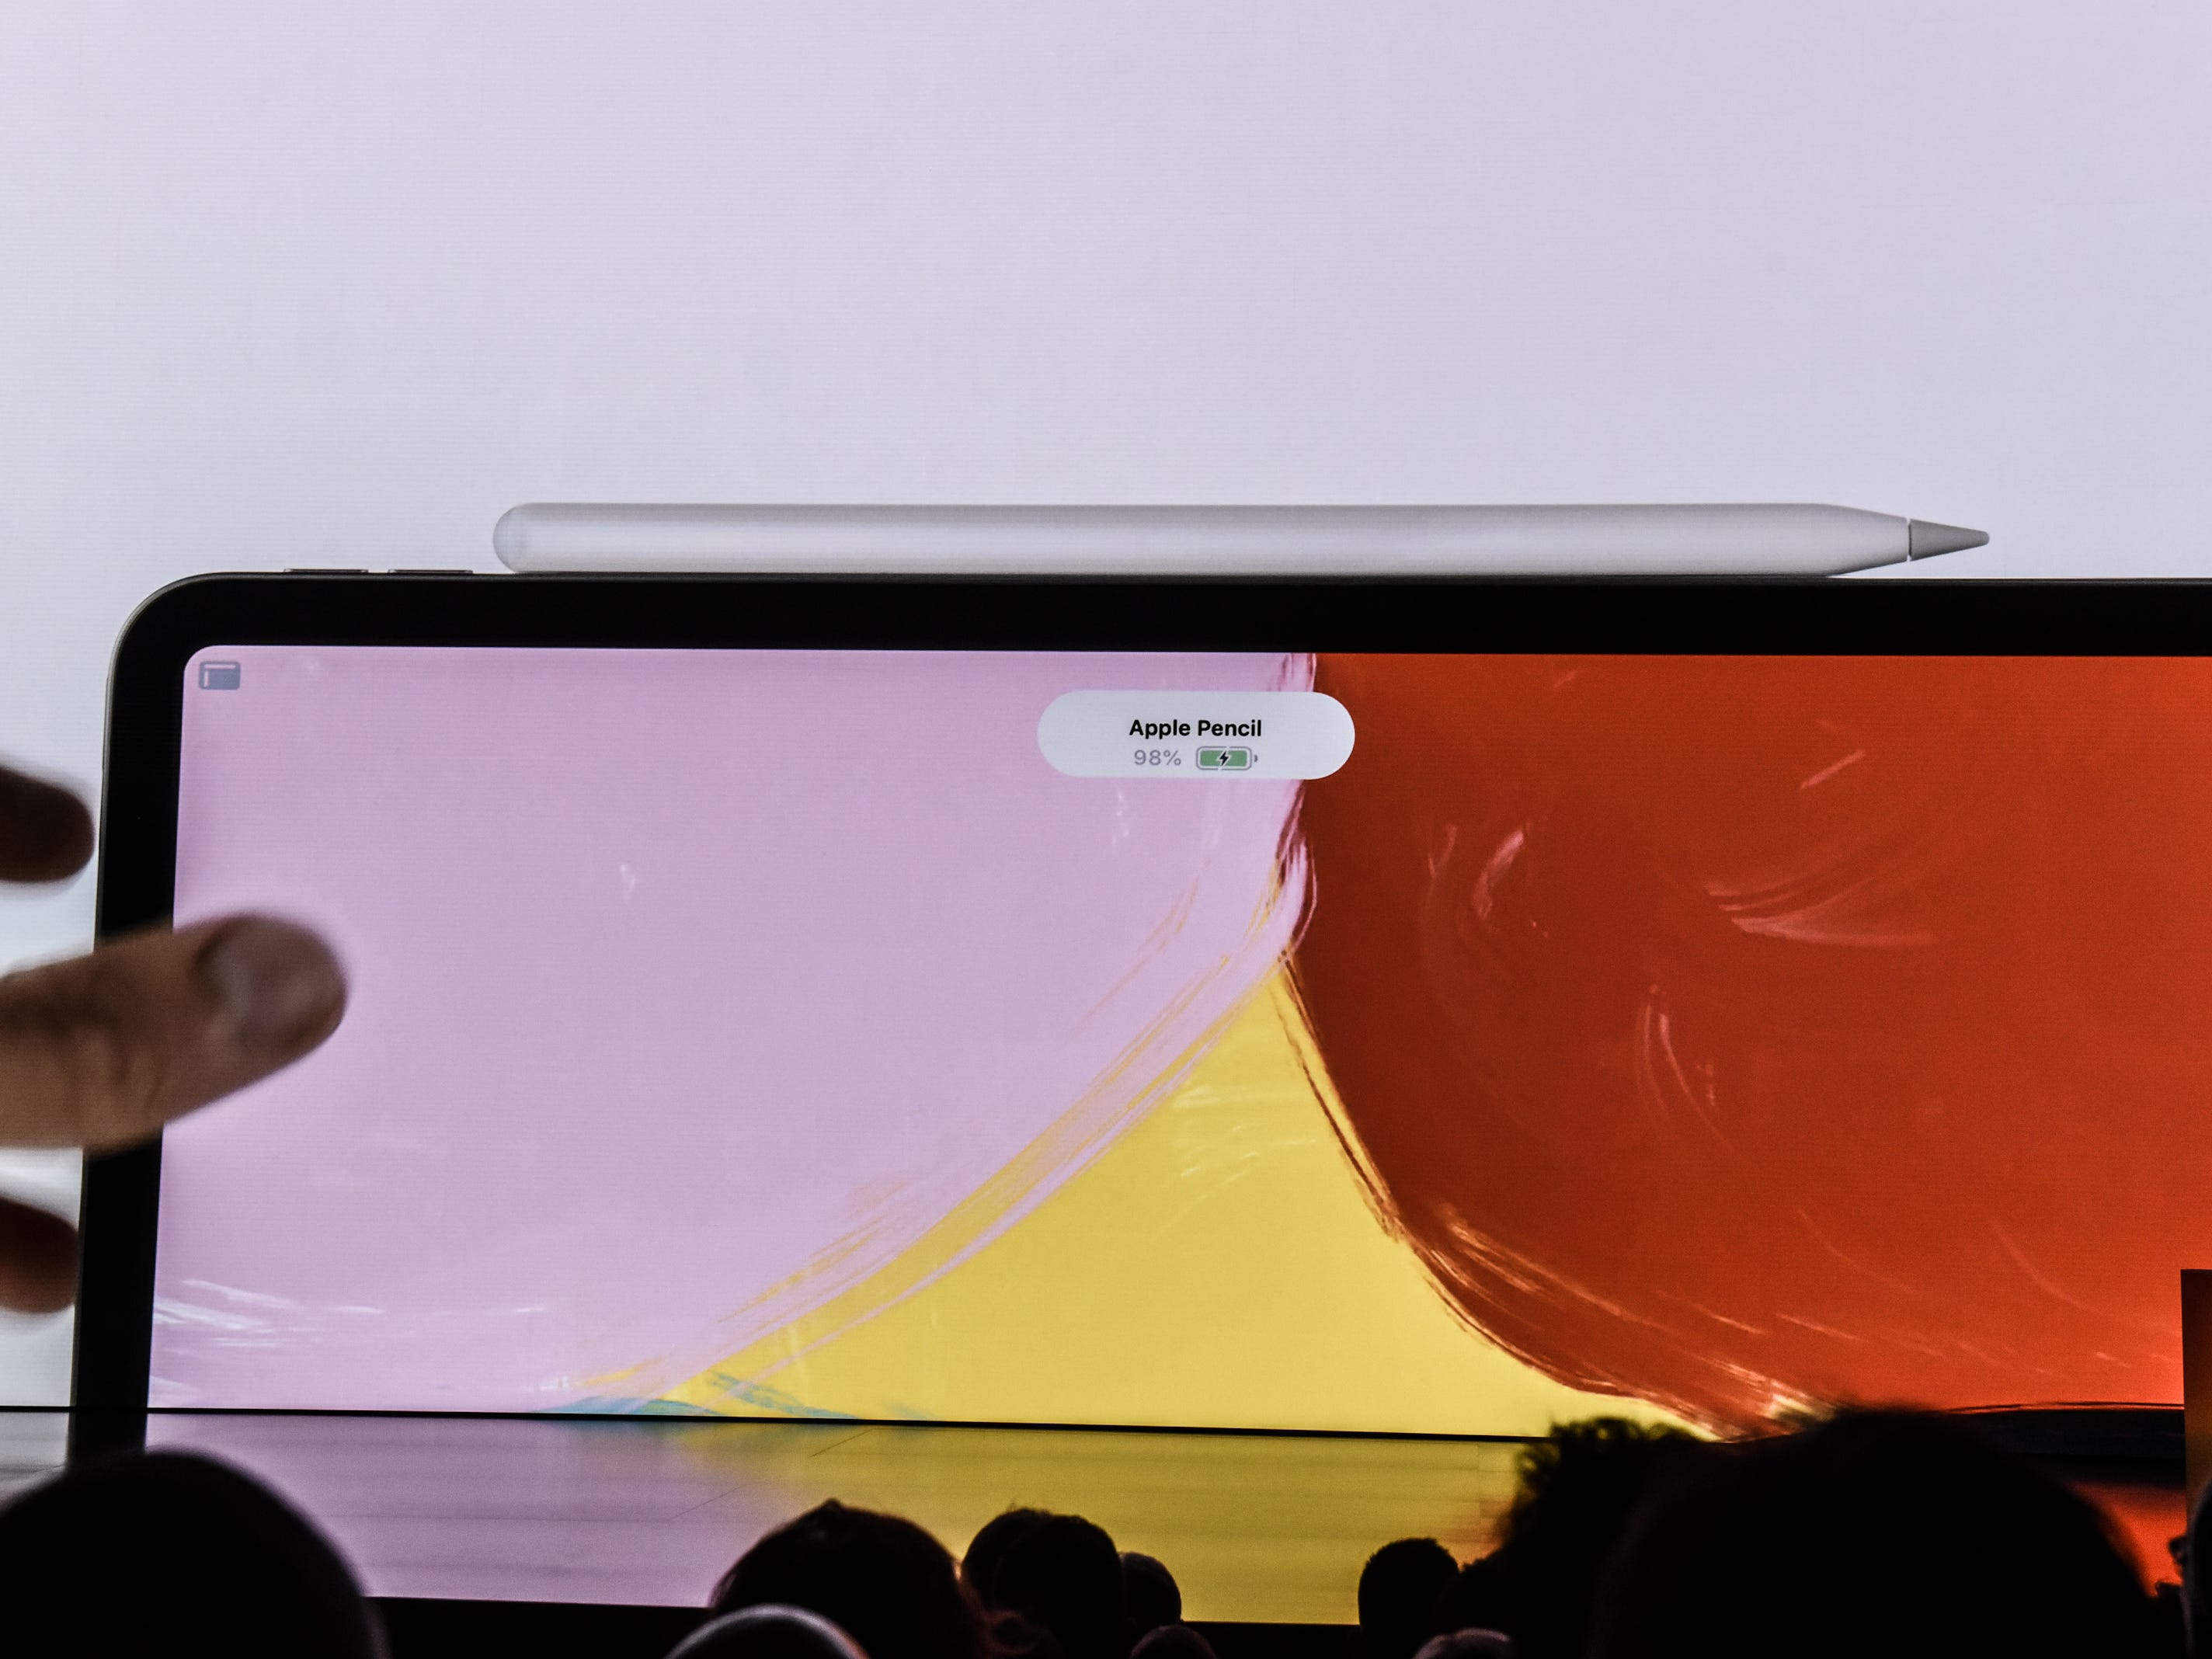 Apple unveils a new iPad Pro with new Apple Pencil during a launch event at the Brooklyn Academy of Music, Tuesday, Oct. 30, 2018.